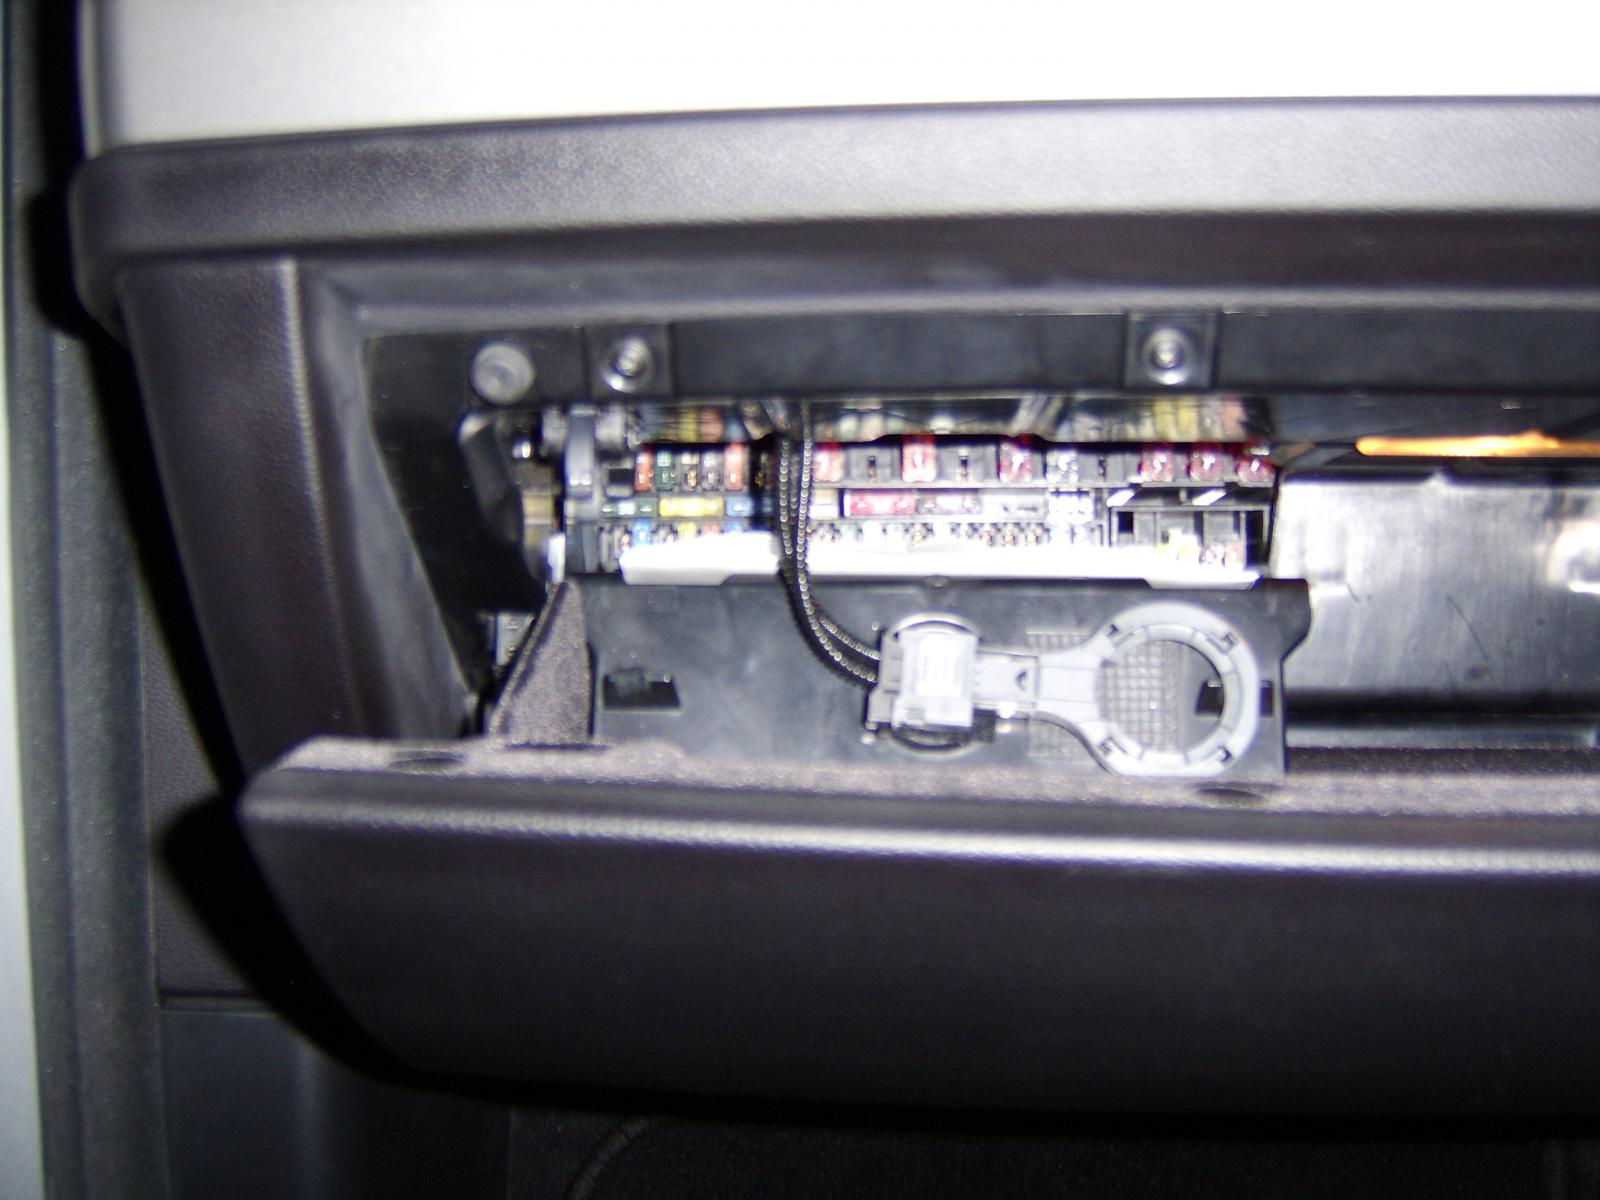 e90 fuse box location - wiring diagram dat region-pair-a -  region-pair-a.tenutaborgolano.it  tenuta borgolano